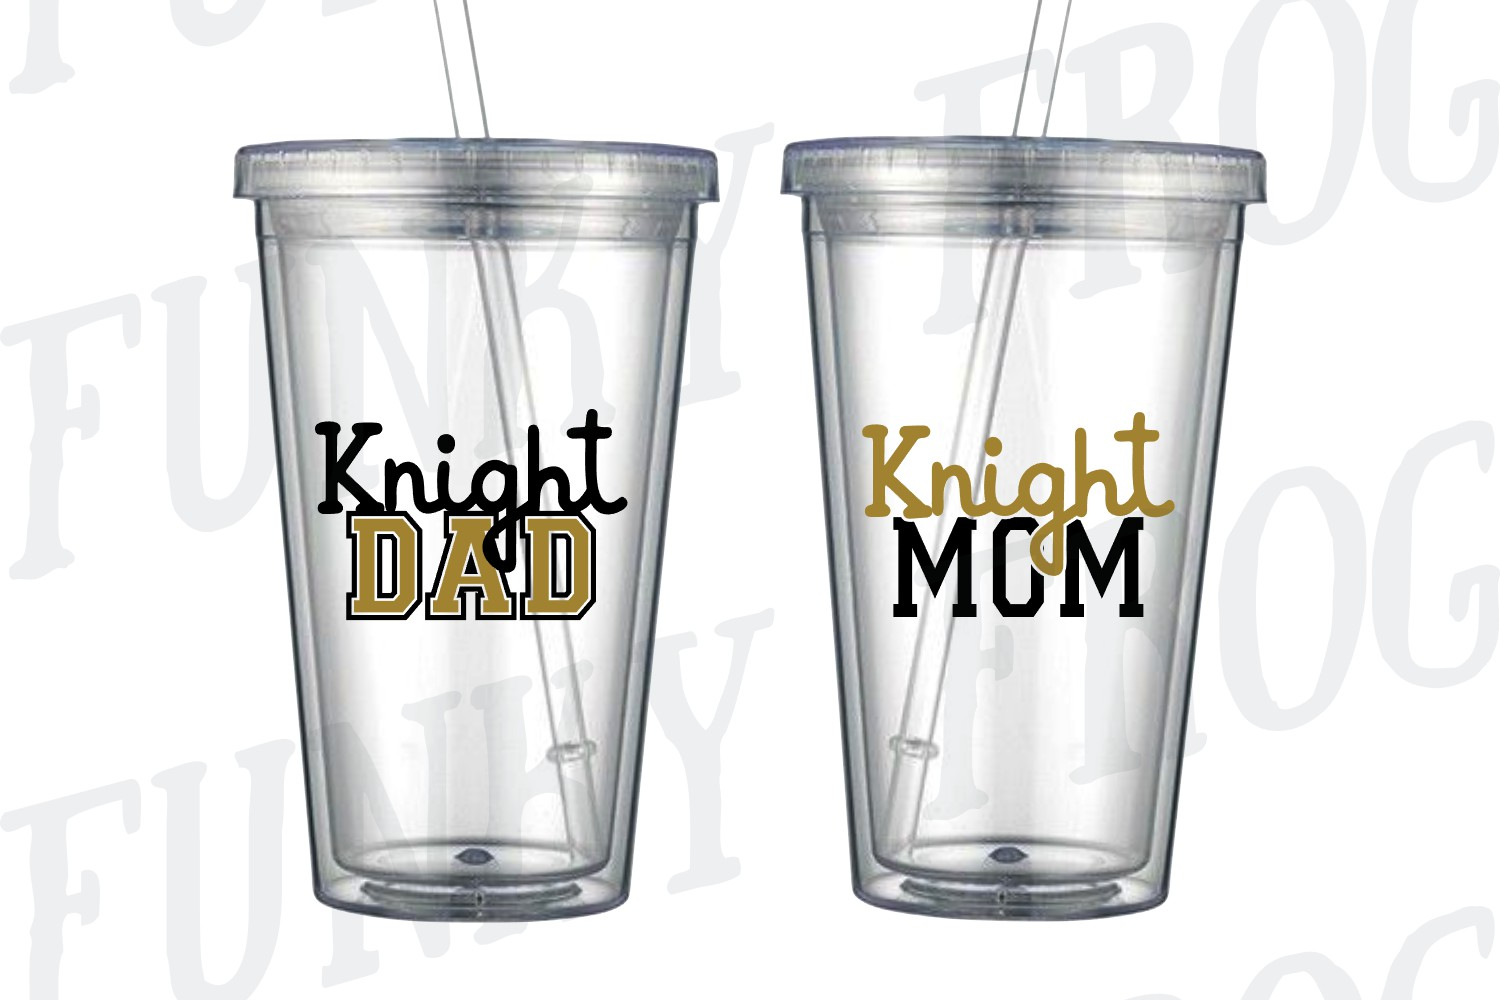 Knight Dad and Knight Mom SVG Cut File for Crafters example image 6